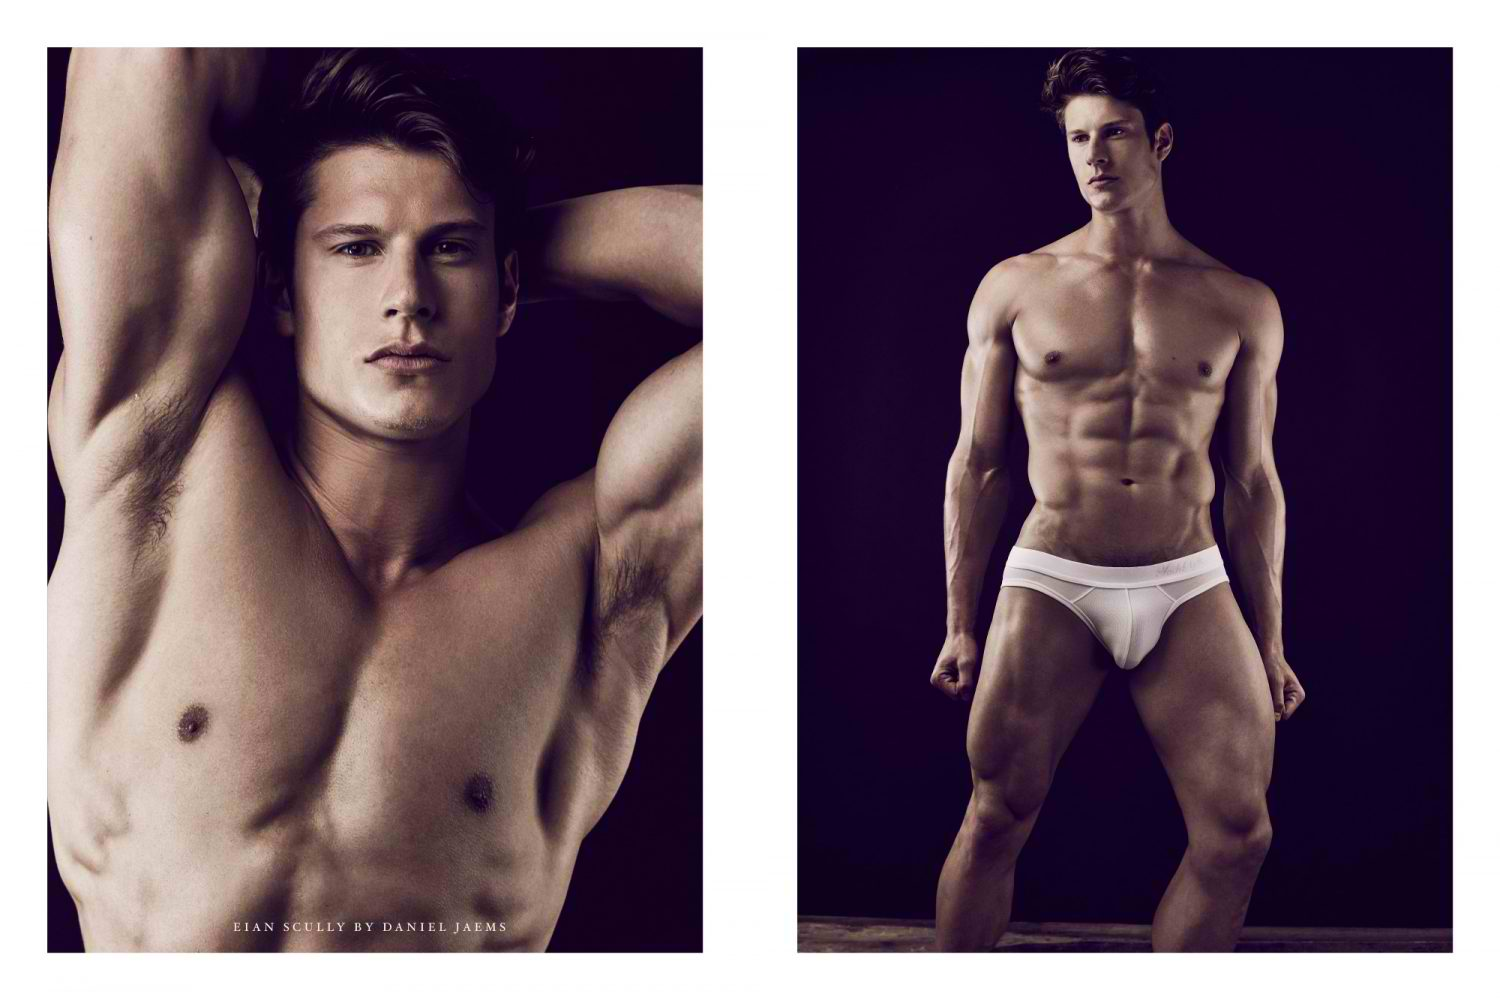 Eian-Scully-by-Daniel-Jaems-Obsession-No17-005-1500x1000 (1)